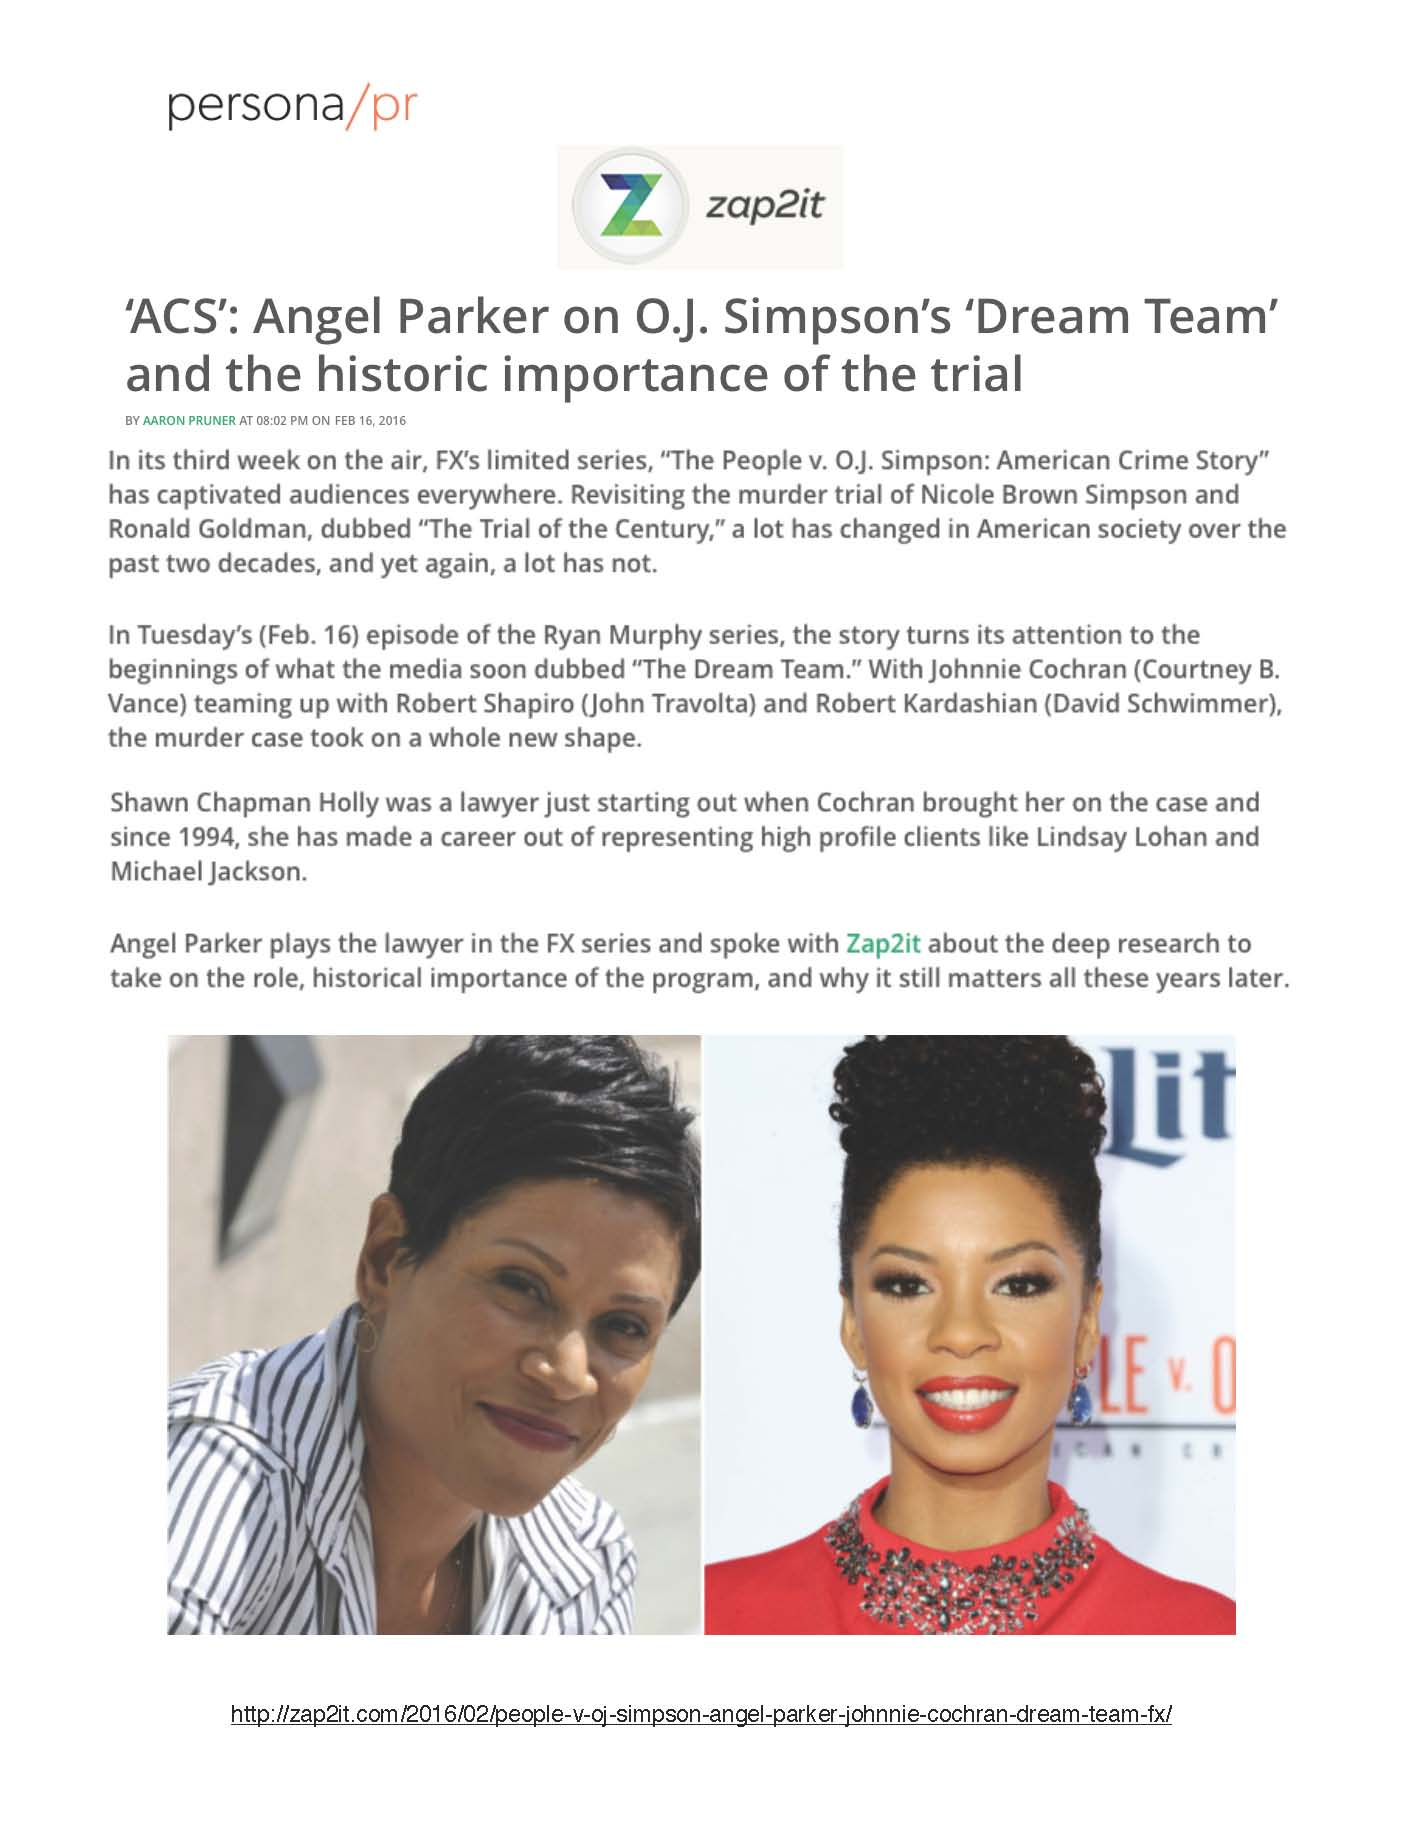 AngelParker-Zap2It-02.16.16_Page_1.jpg